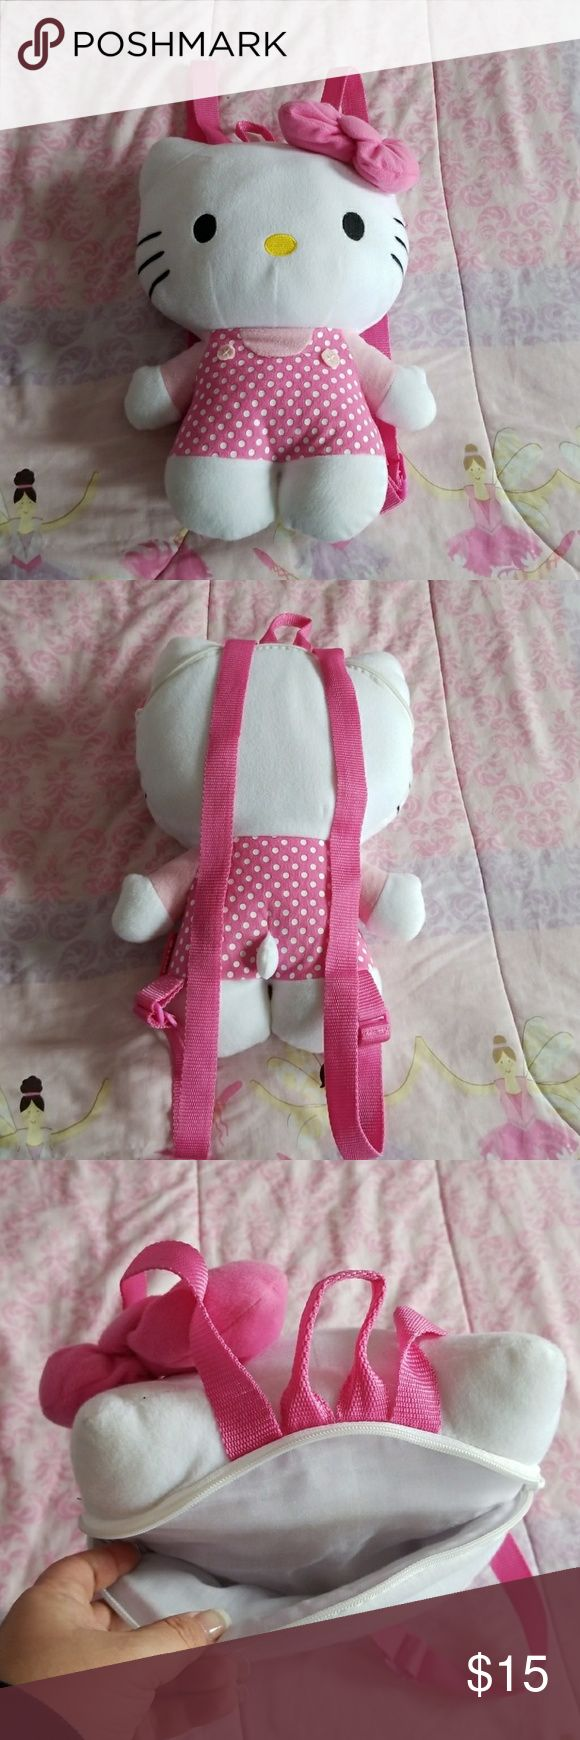 Hello Kitty backpack Small backpack in EXCELLENT condition. Small zip pocket in back for storage. Zipper works perfect! No rips or tears. Small stains can probably wash off. Hello Kitty Accessories Bags